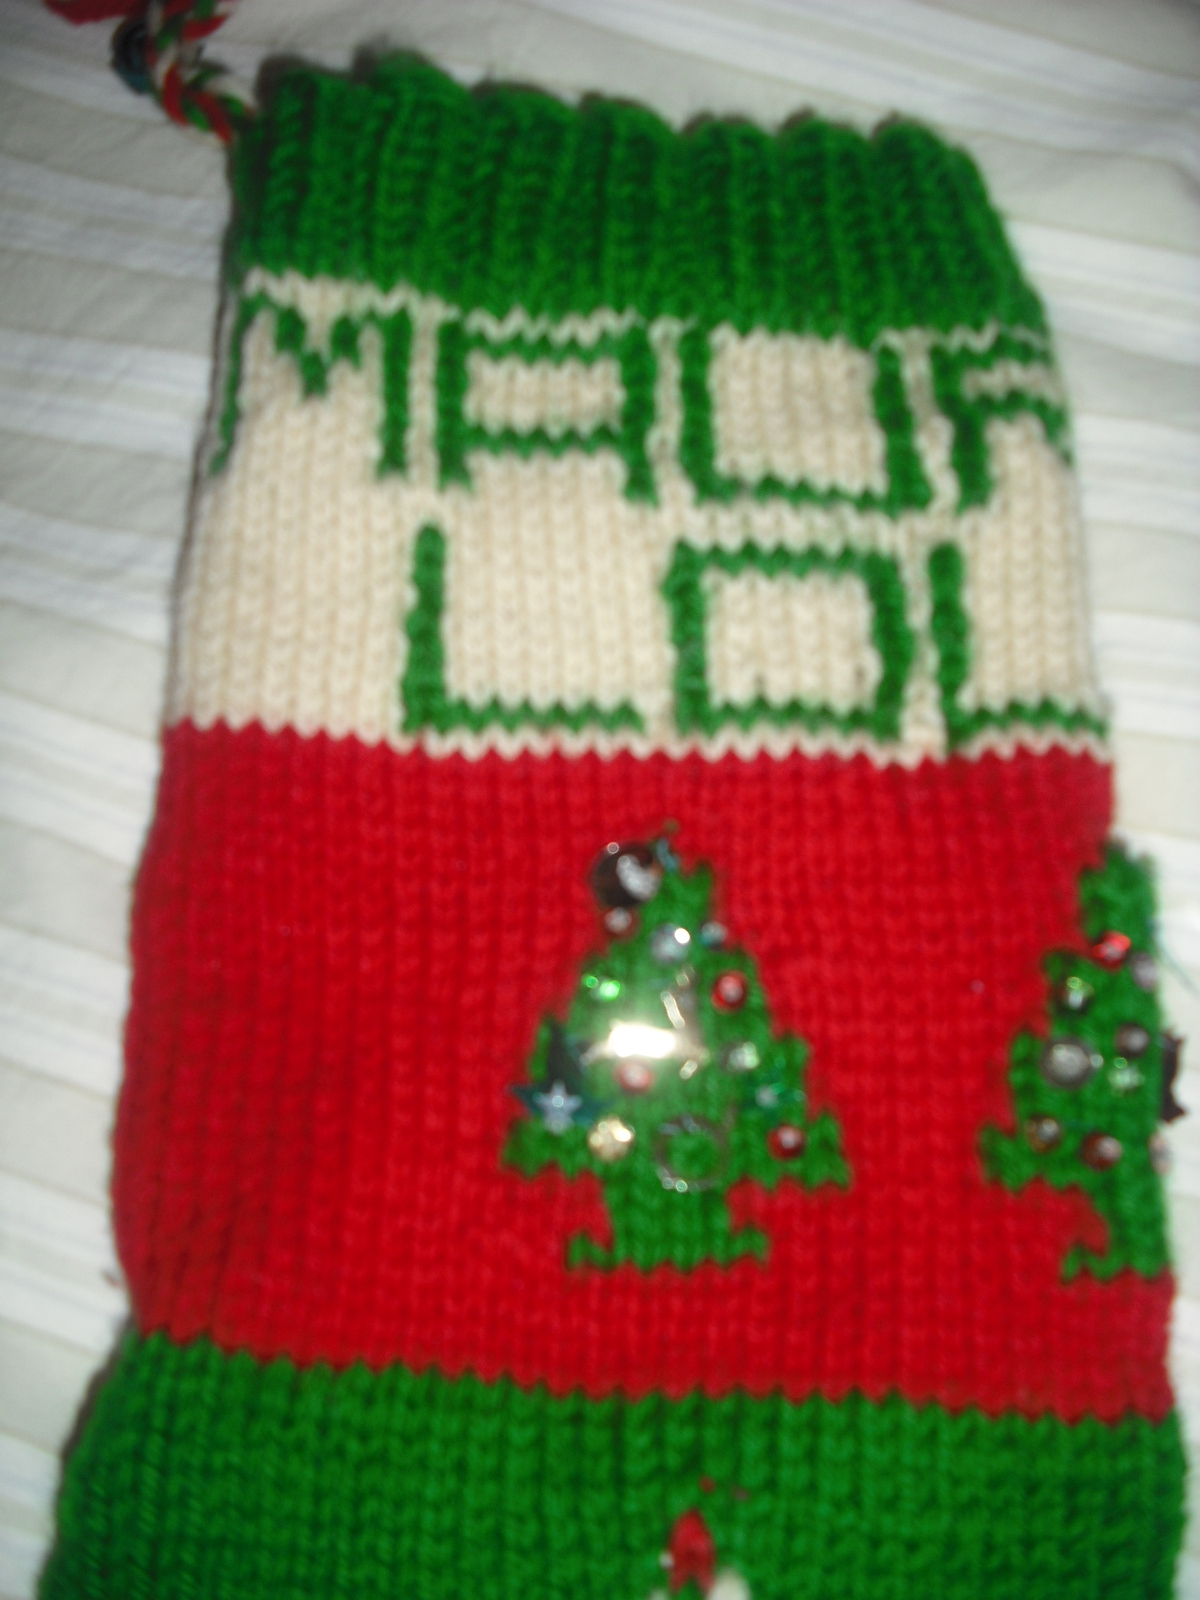 Entrancing knit christmas stockings with multicolorful christmas stocking and fireplace at chistmas day interior design